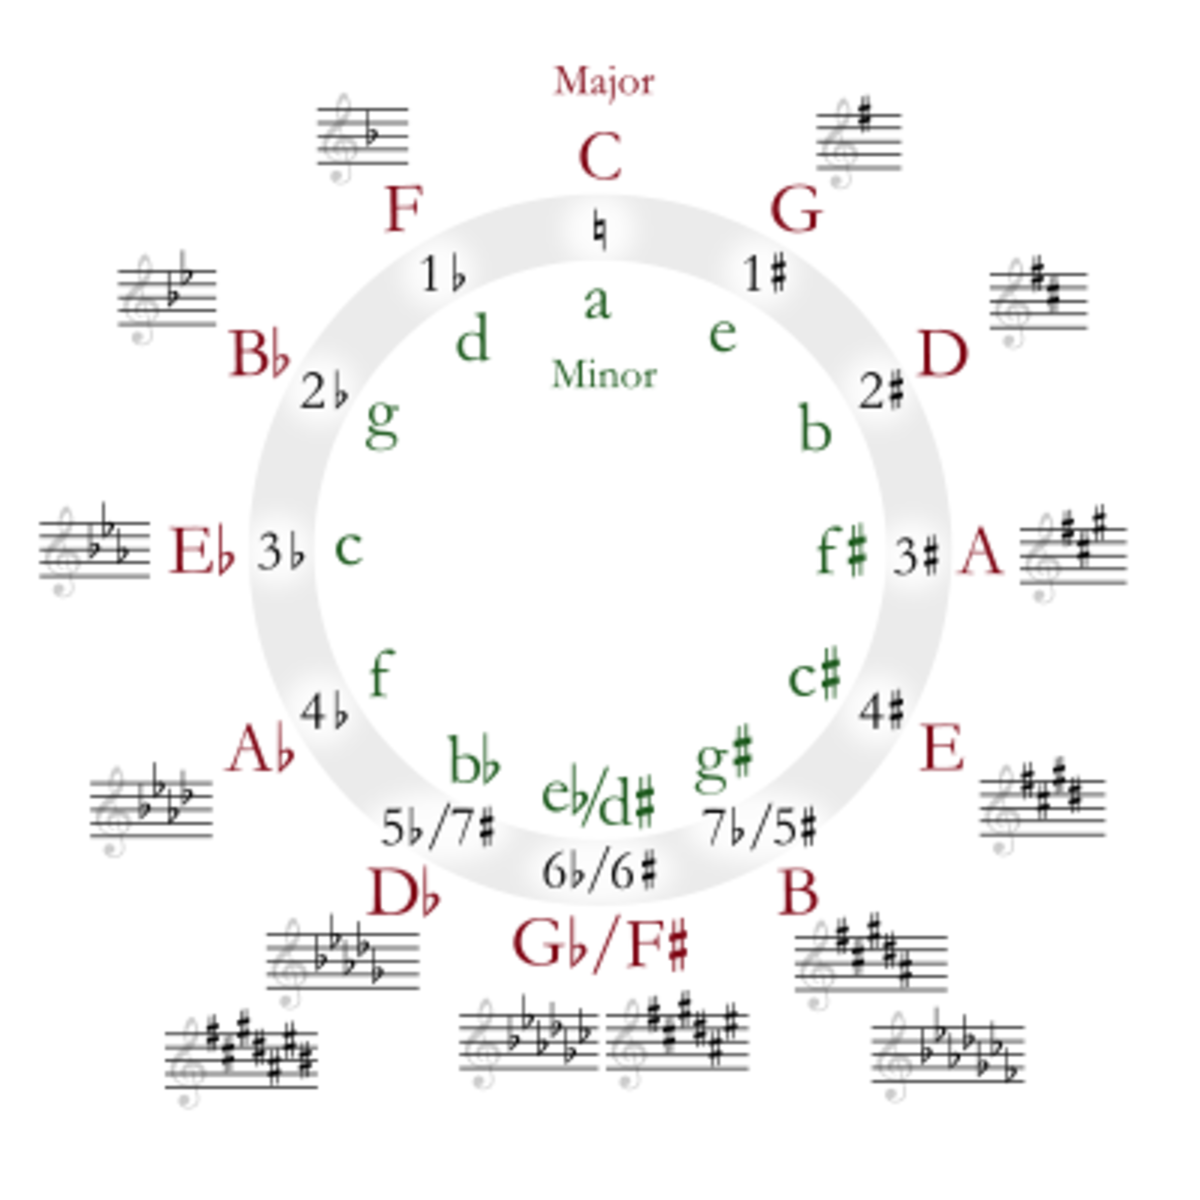 If you can memorize this, you will know almost every scale, and that makes you awesome.